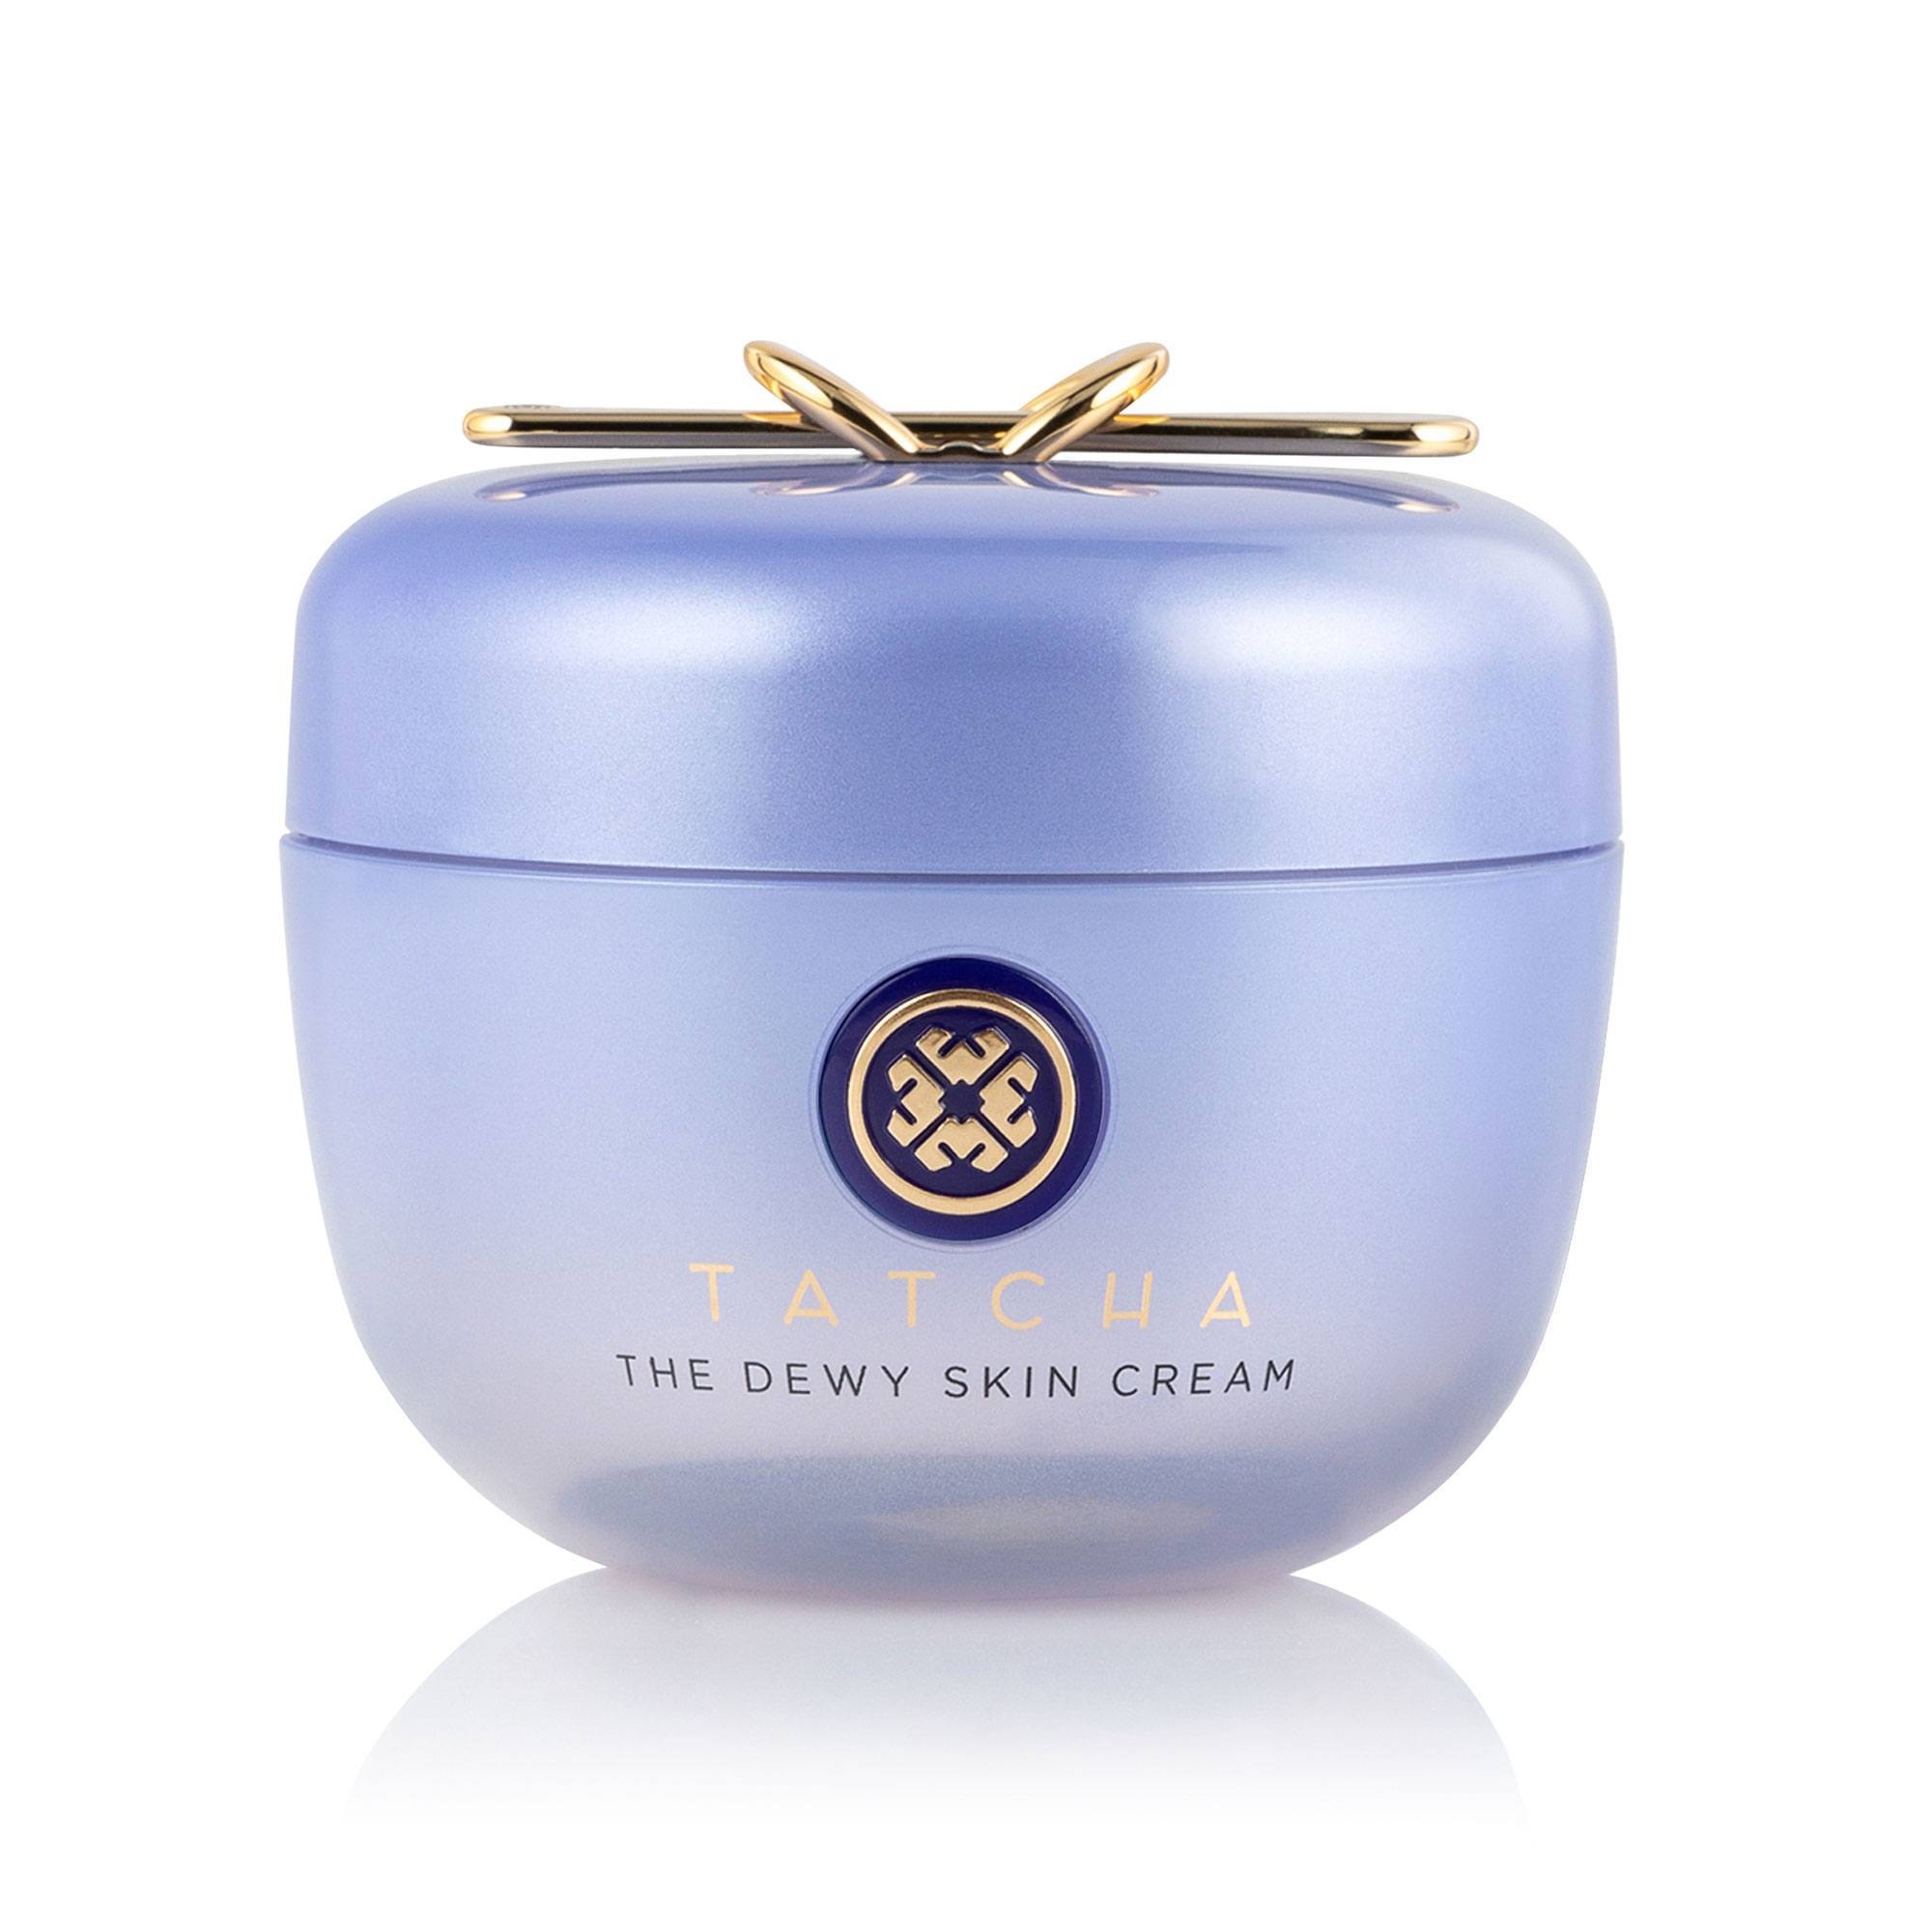 Best New Products Tatcha - The brand's cult-favorite Luminous Dewy Skin Mist (Kim Kardashian and her makeup artist Mario Dedivanovic are fans!) is now in cream form. The purple-tinted formula includes a hydrating and collagen-boosting blend of hyaluronic acid and natural botanical extracts for super supple skin.